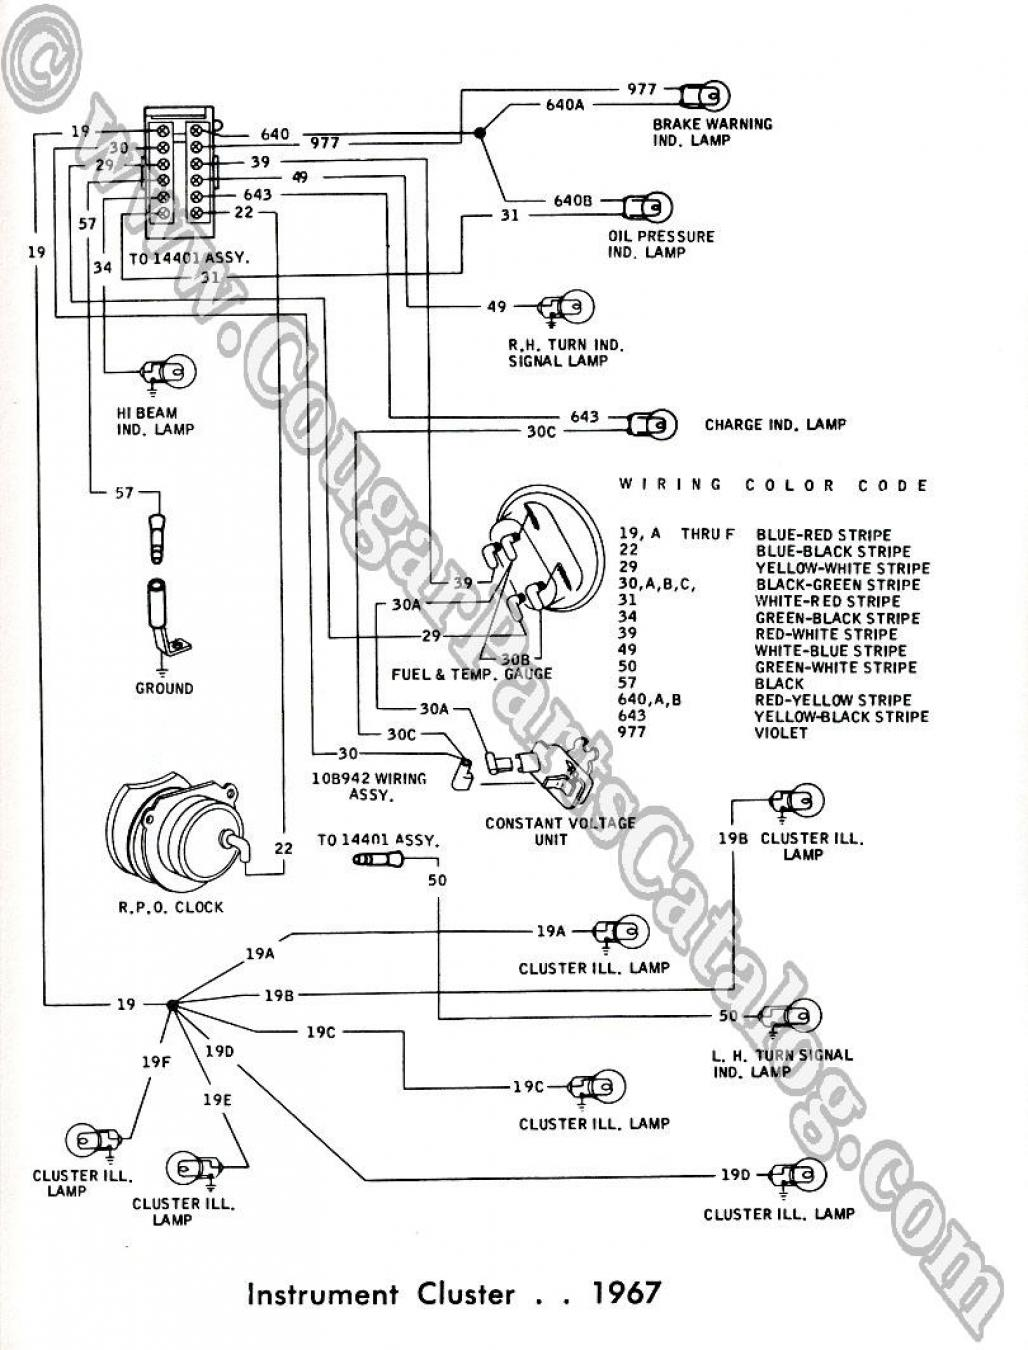 manual wiring diagram repro 1967 mercury cougar 25959 at west